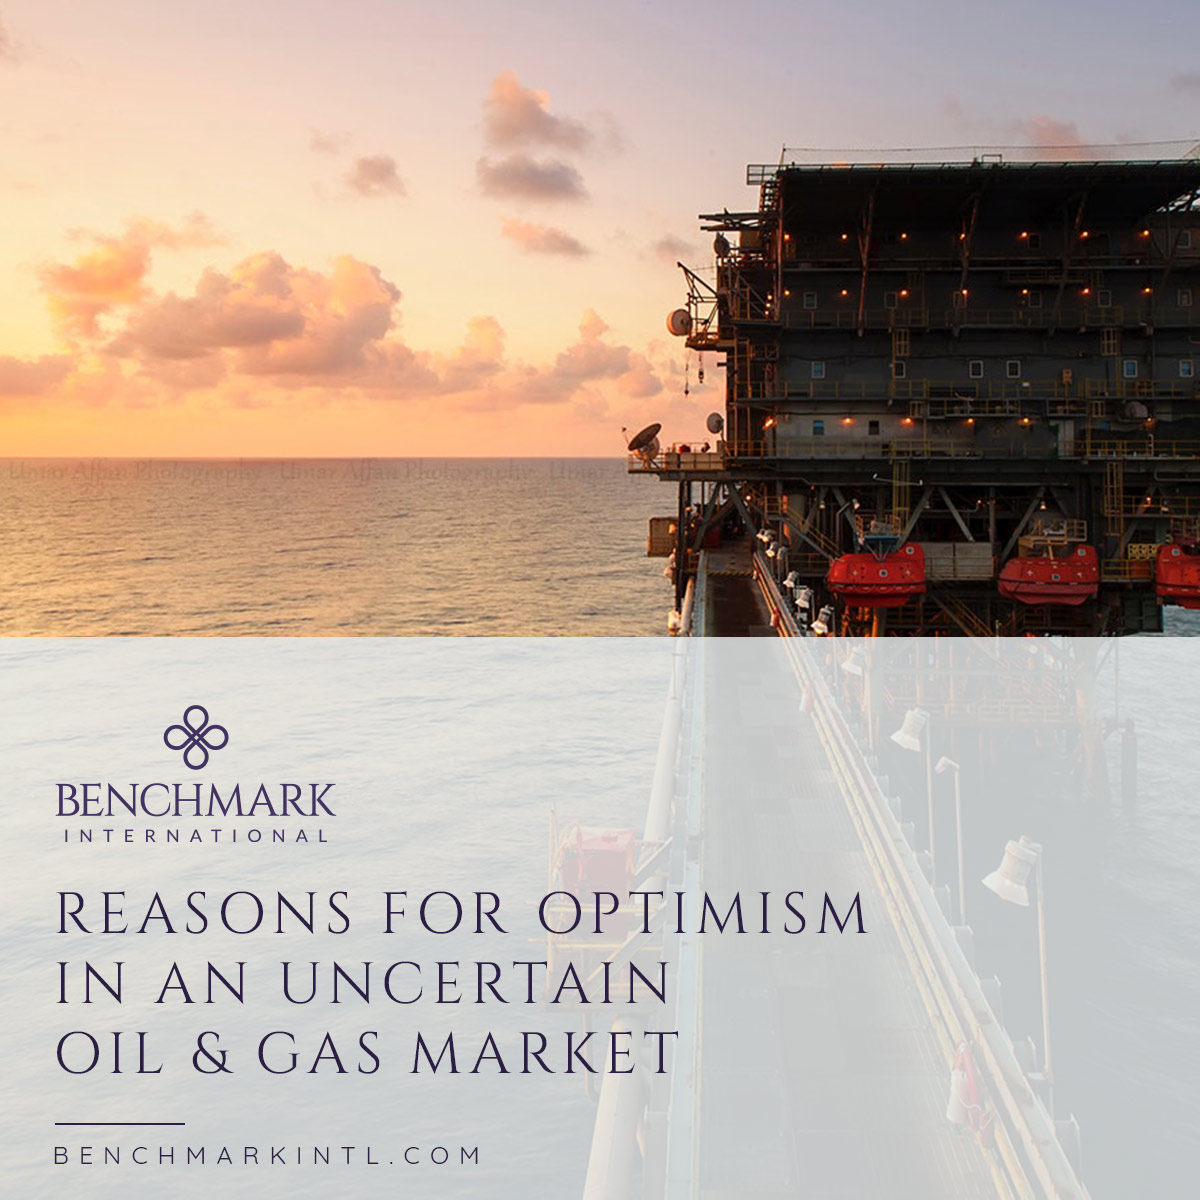 Reasons_For_Optimism-In_An_Uncertain_Oil_&_Gas_Market(2)